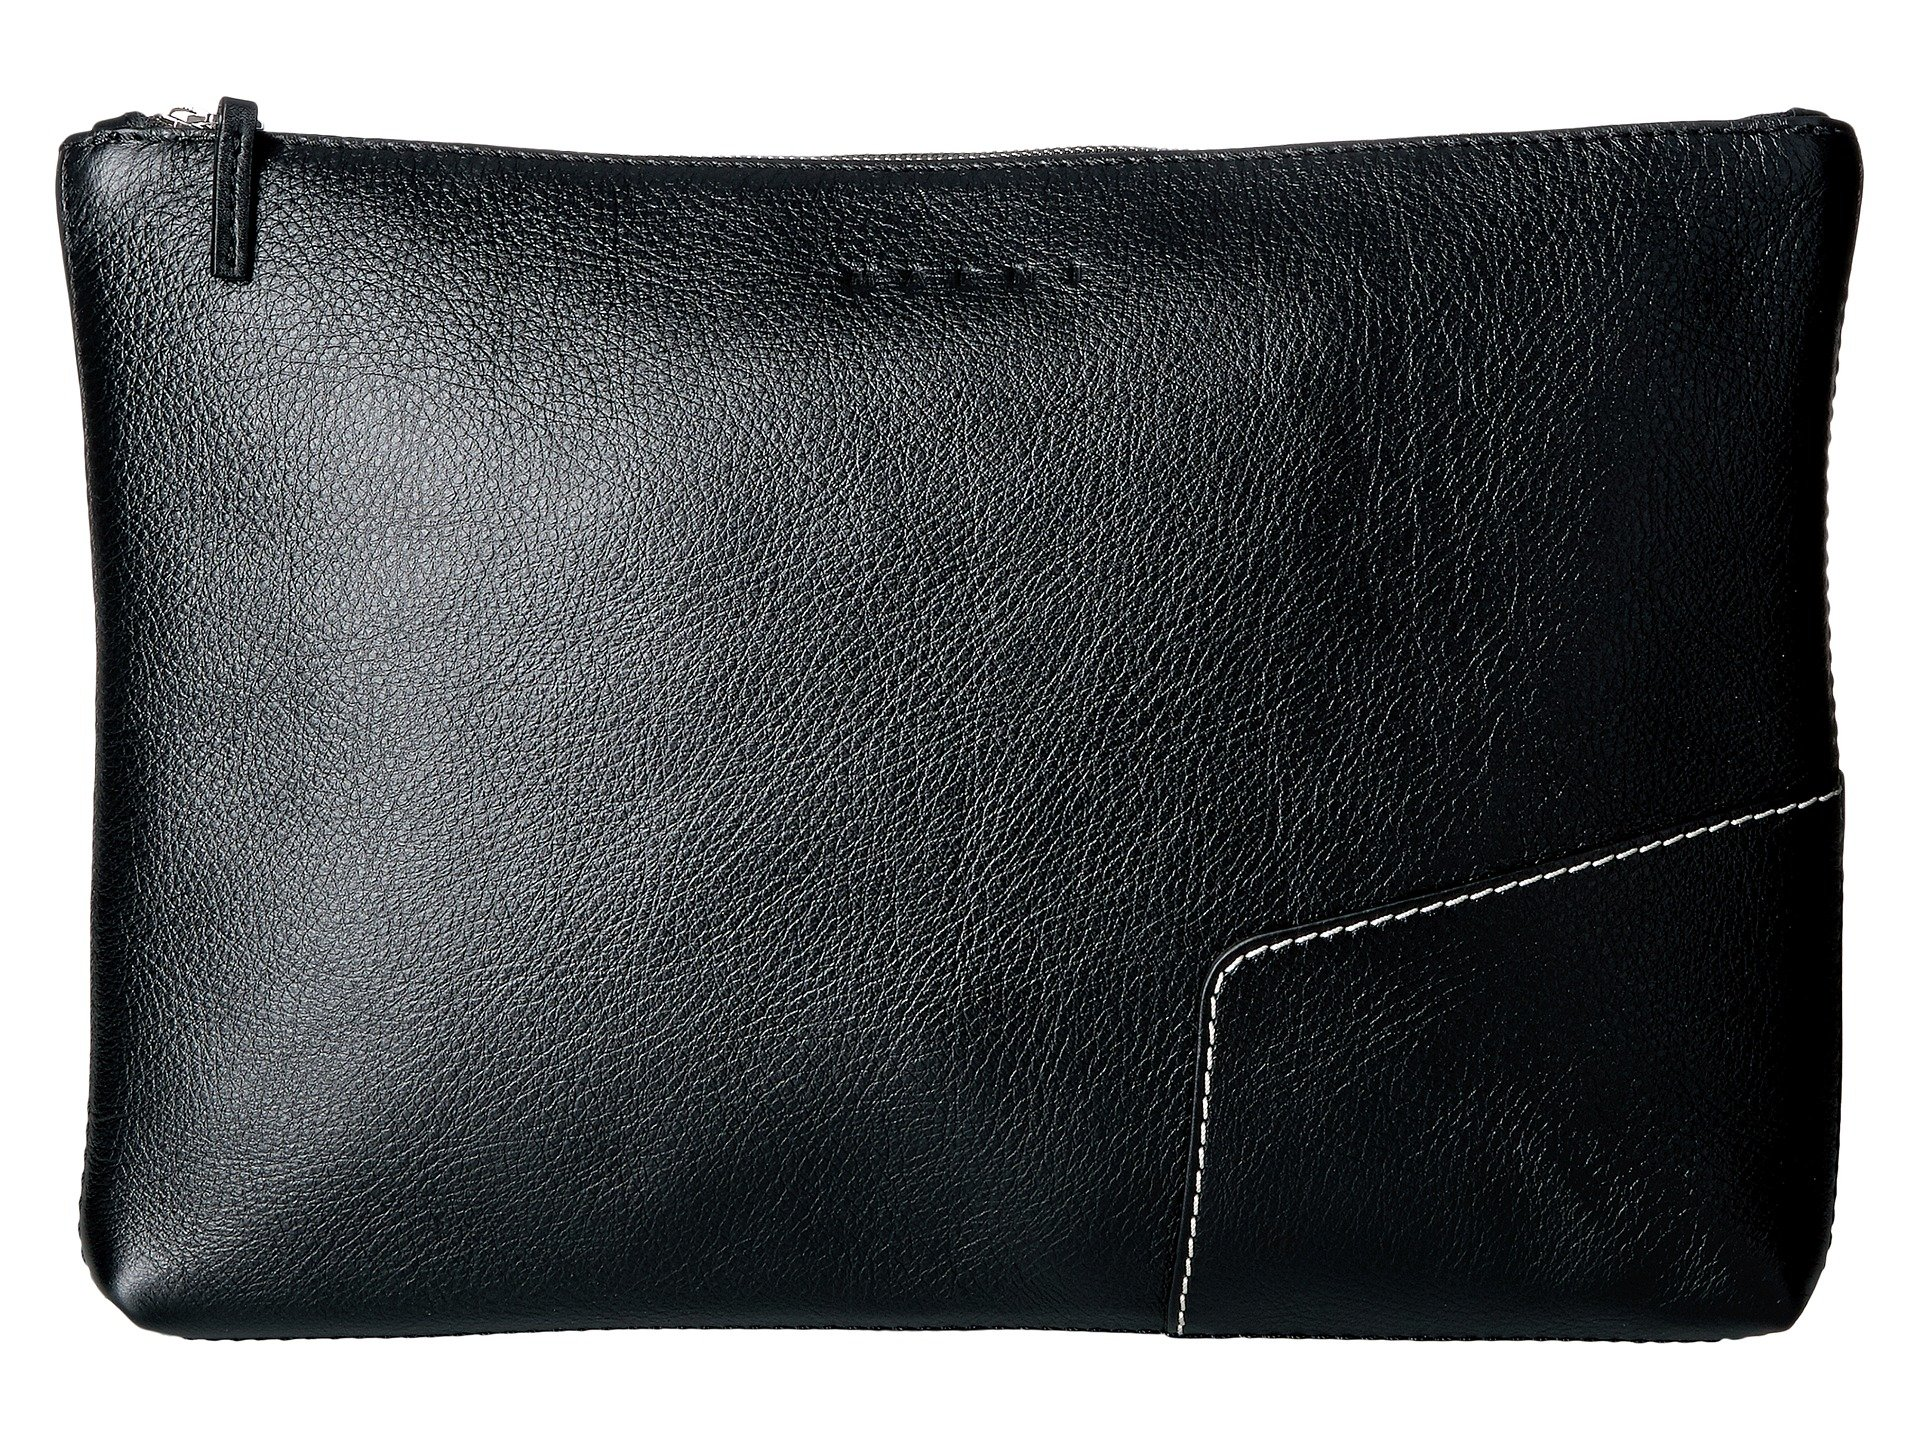 zipped pouch - Black Marni